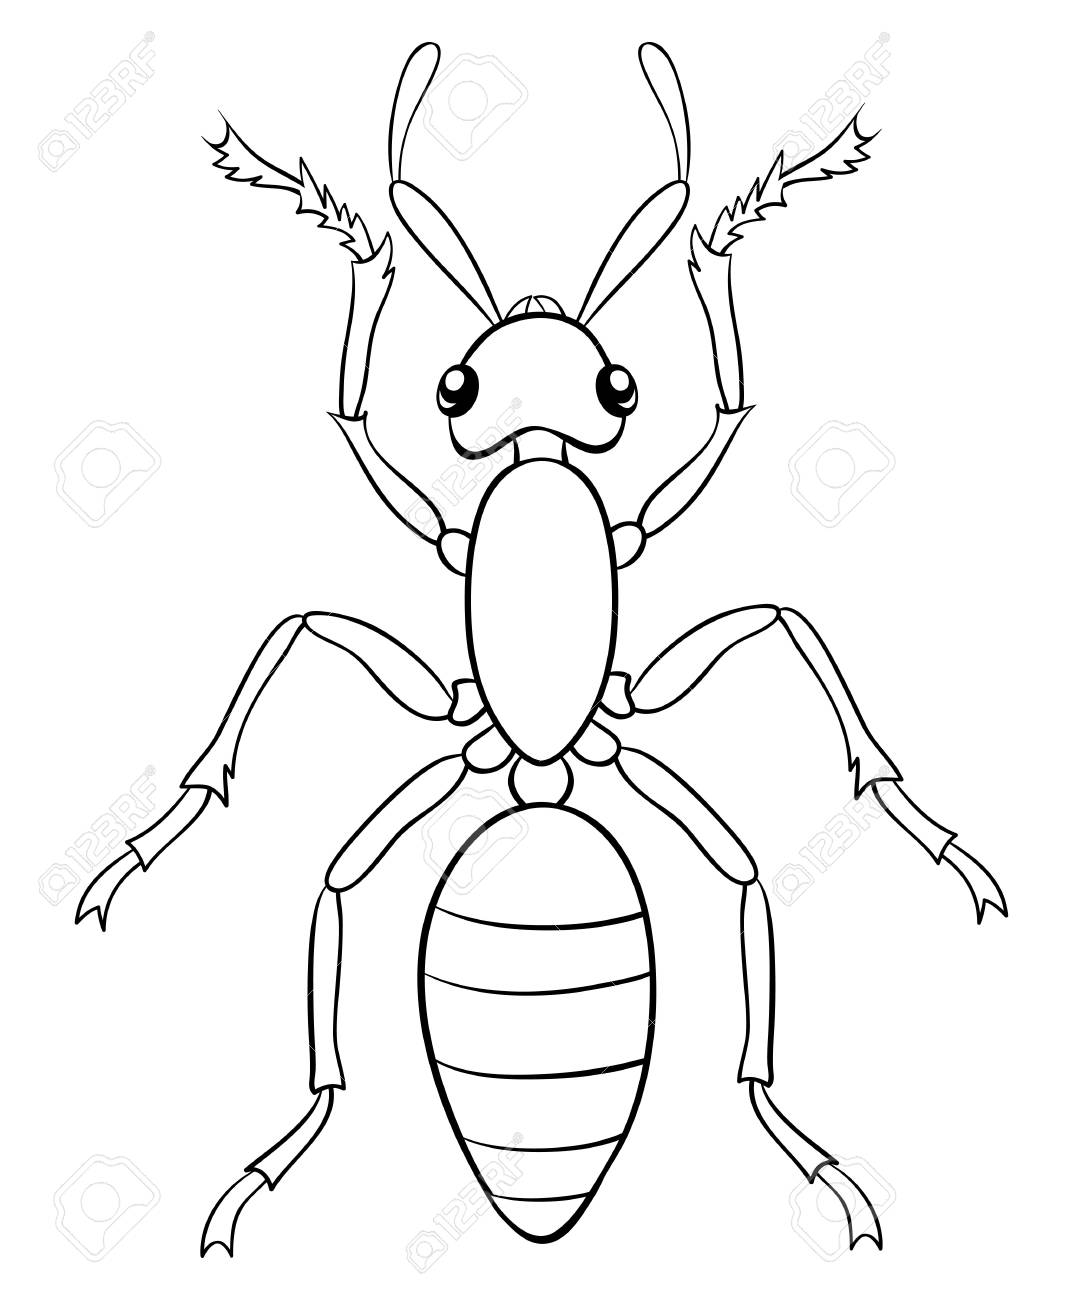 A Cartoon Ant Image For Relaxing Activity.A Coloring Book,page ...